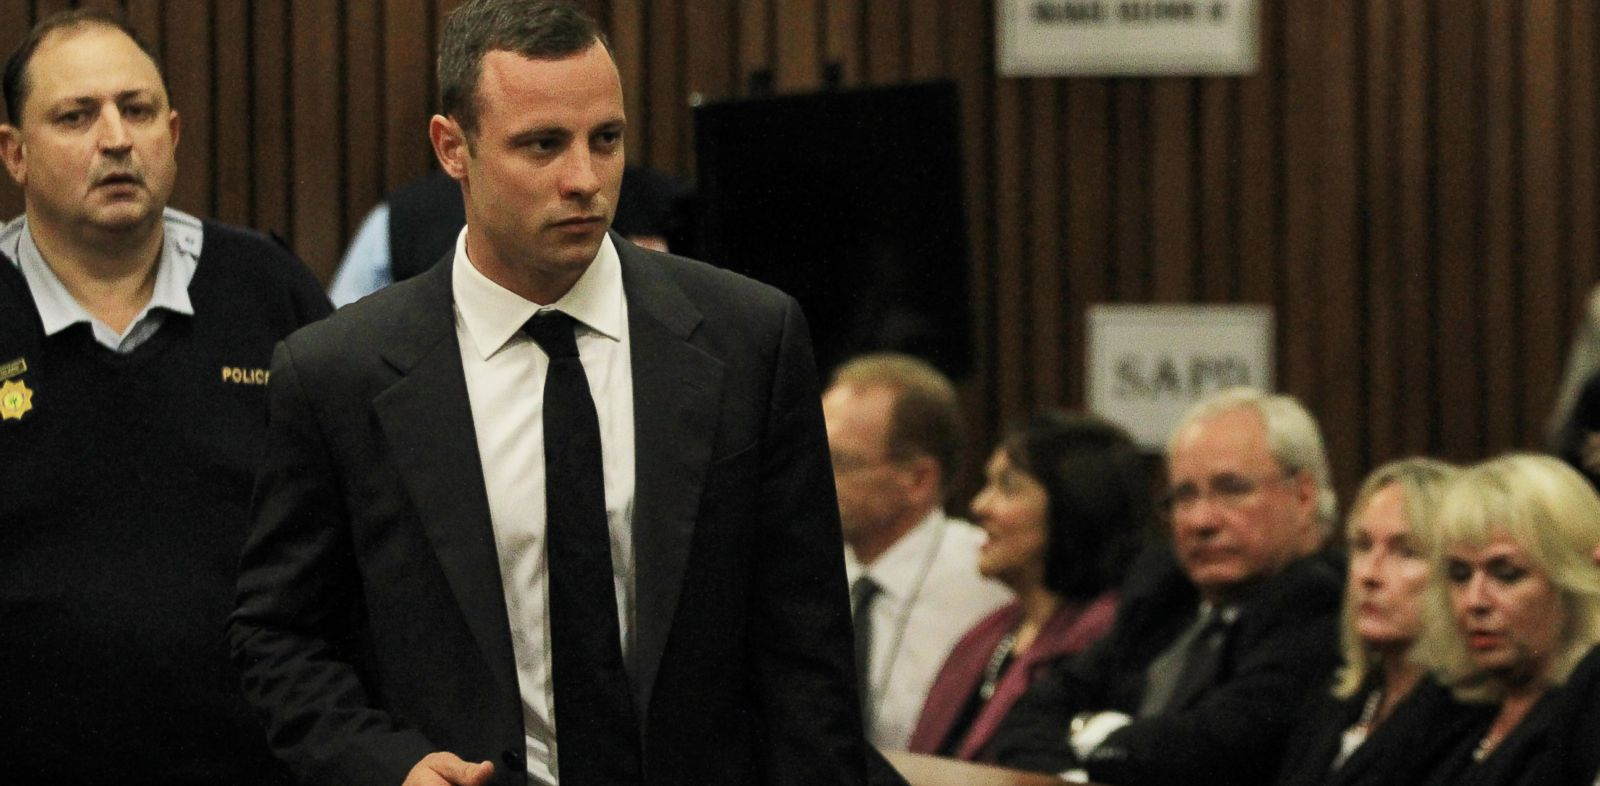 PHOTO: Oscar Pistorius arrives for his trial at the high court in Pretoria, South Africa, Monday, March 3, 2014.